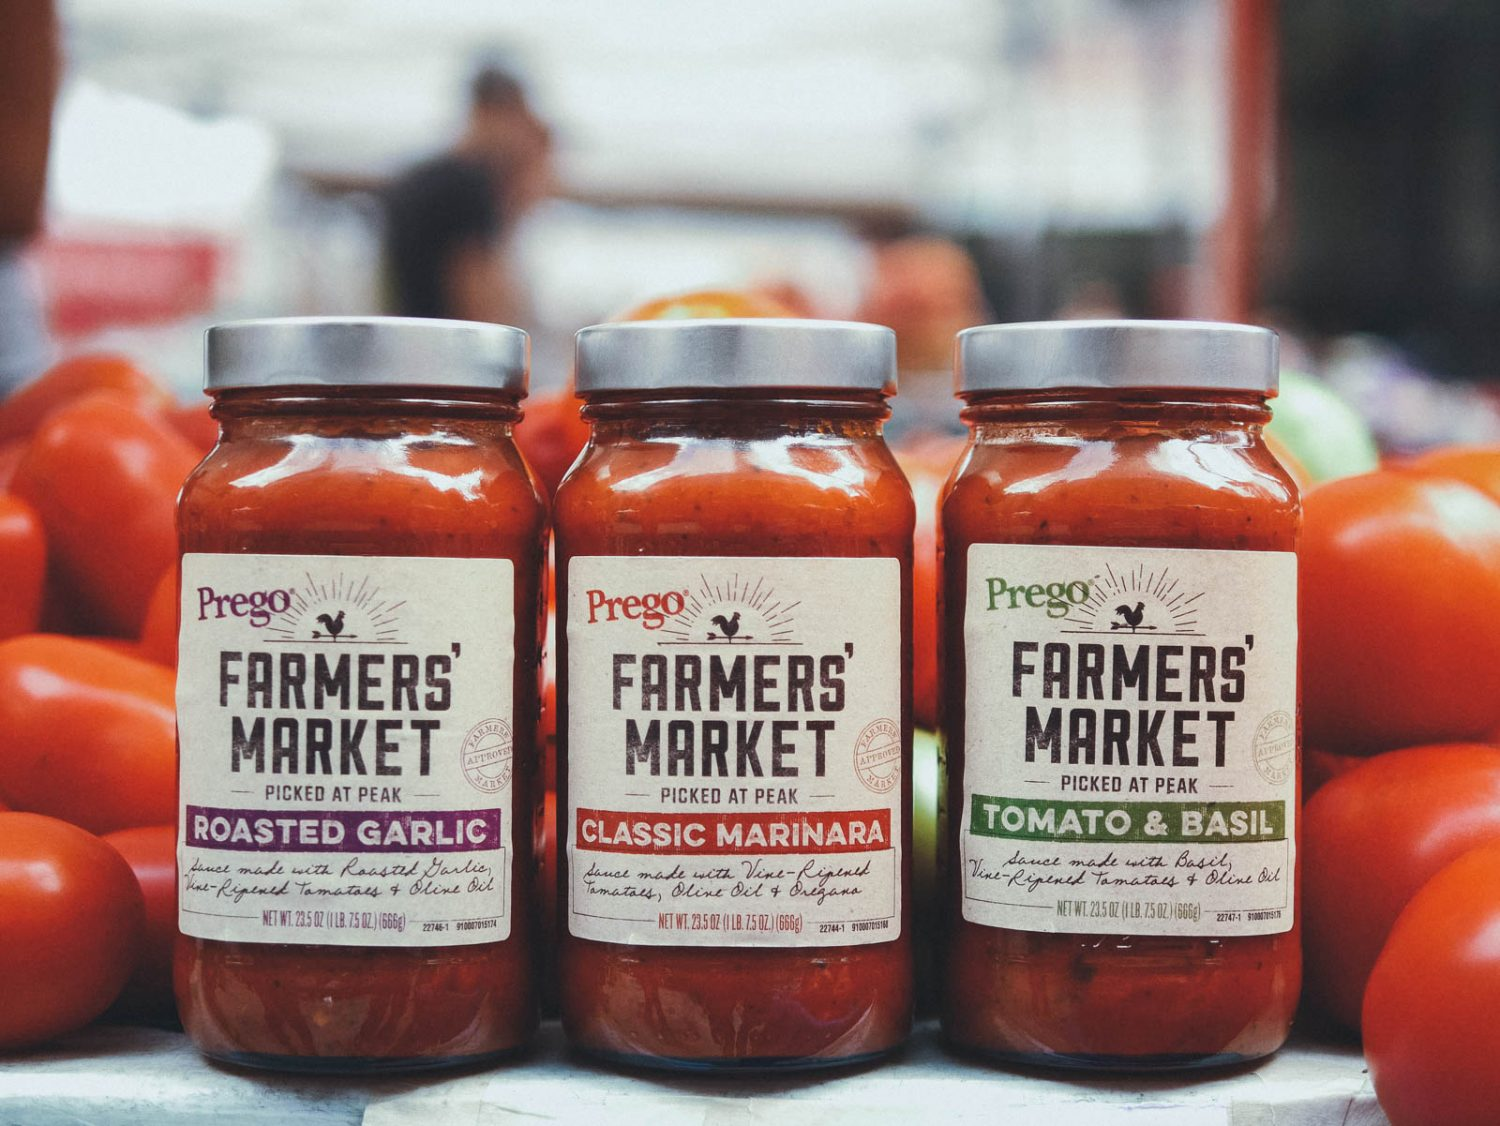 A Vintage Letterpress Font for Prego Farmer's Market Sauces